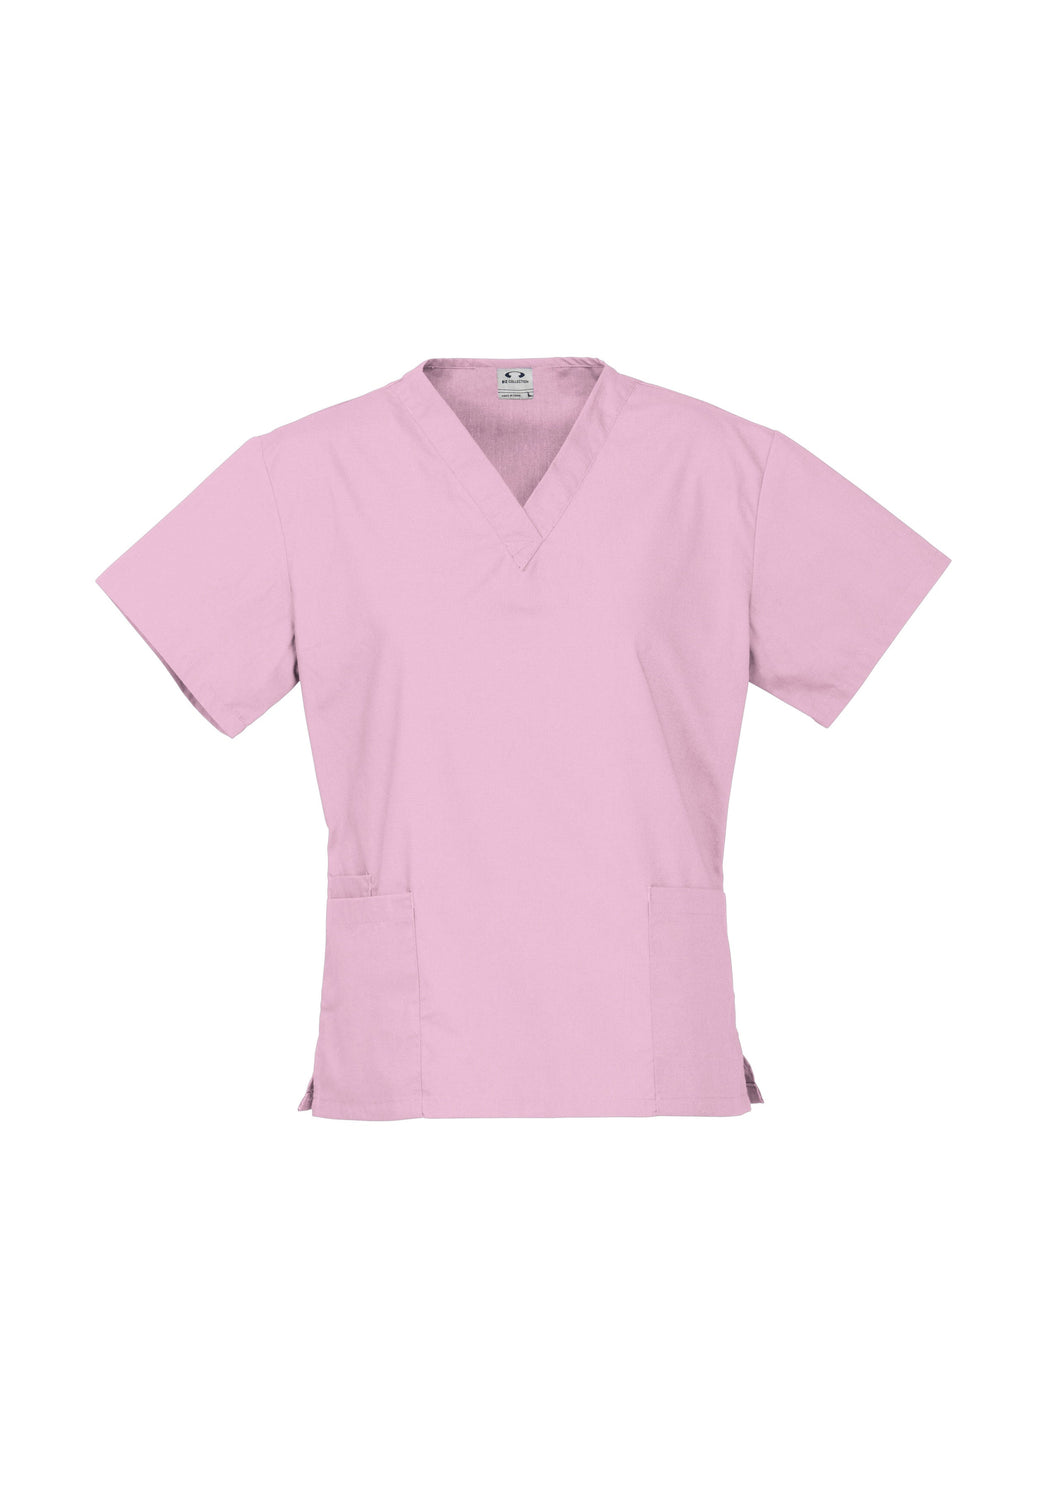 Baby Pink Classic Scrubs Ladies Top